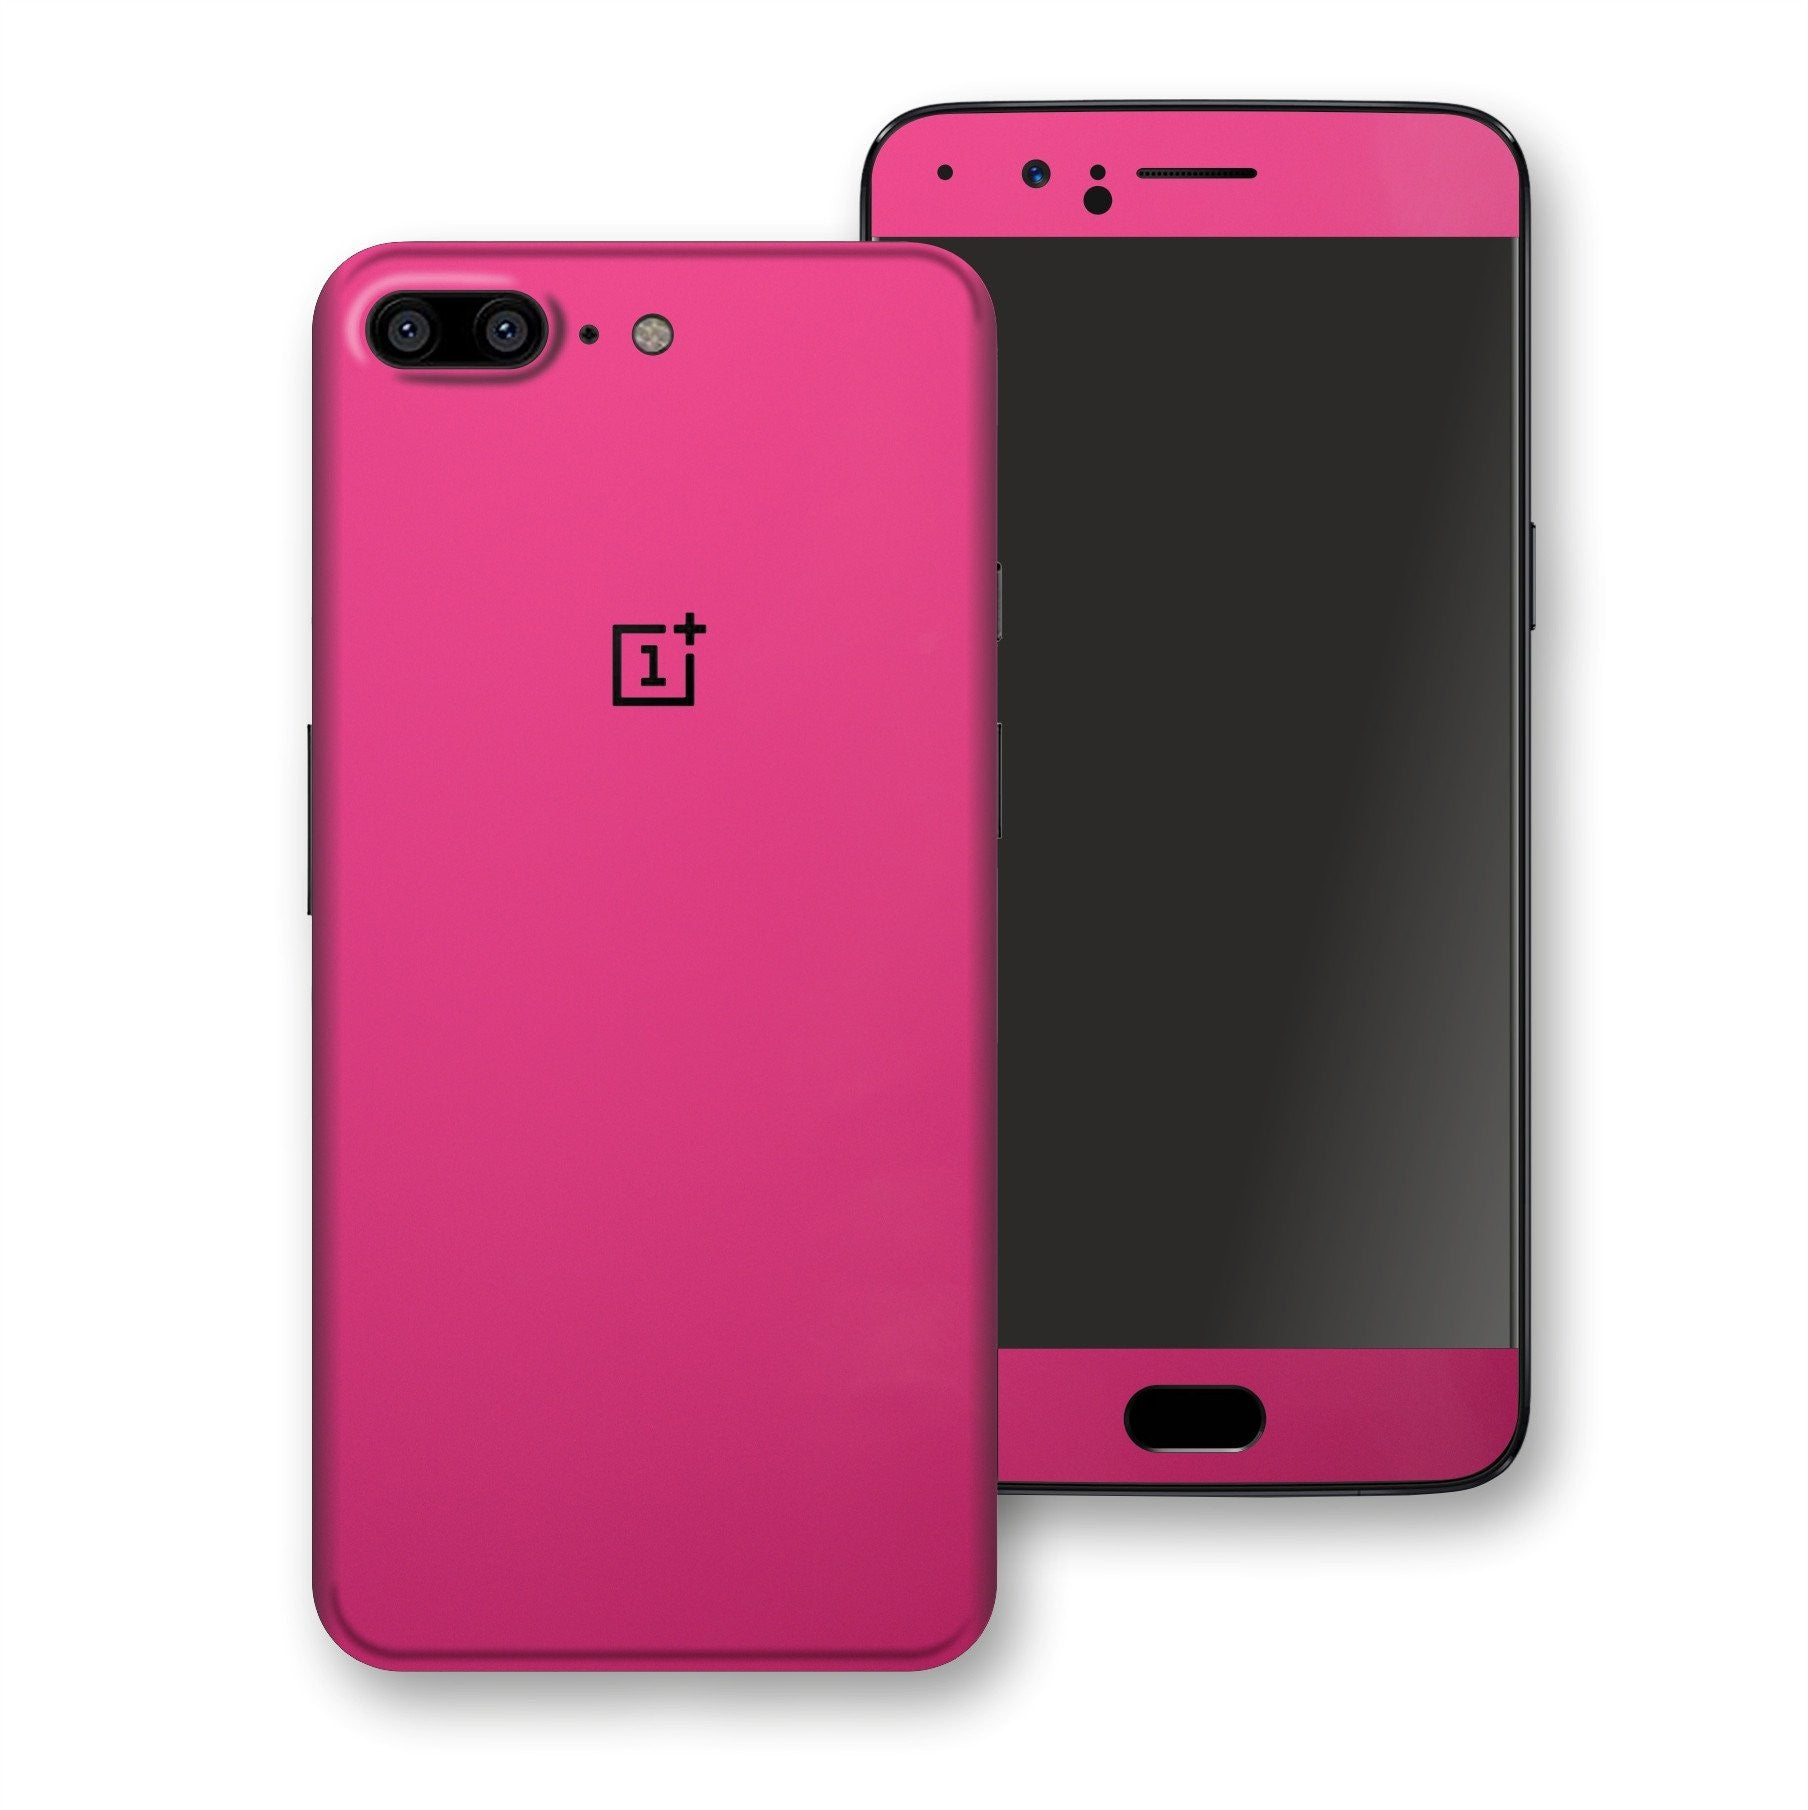 OnePlus 5 Magenta Glossy Gloss Finish Skin, Decal, Wrap, Protector, Cover by EasySkinz | EasySkinz.com